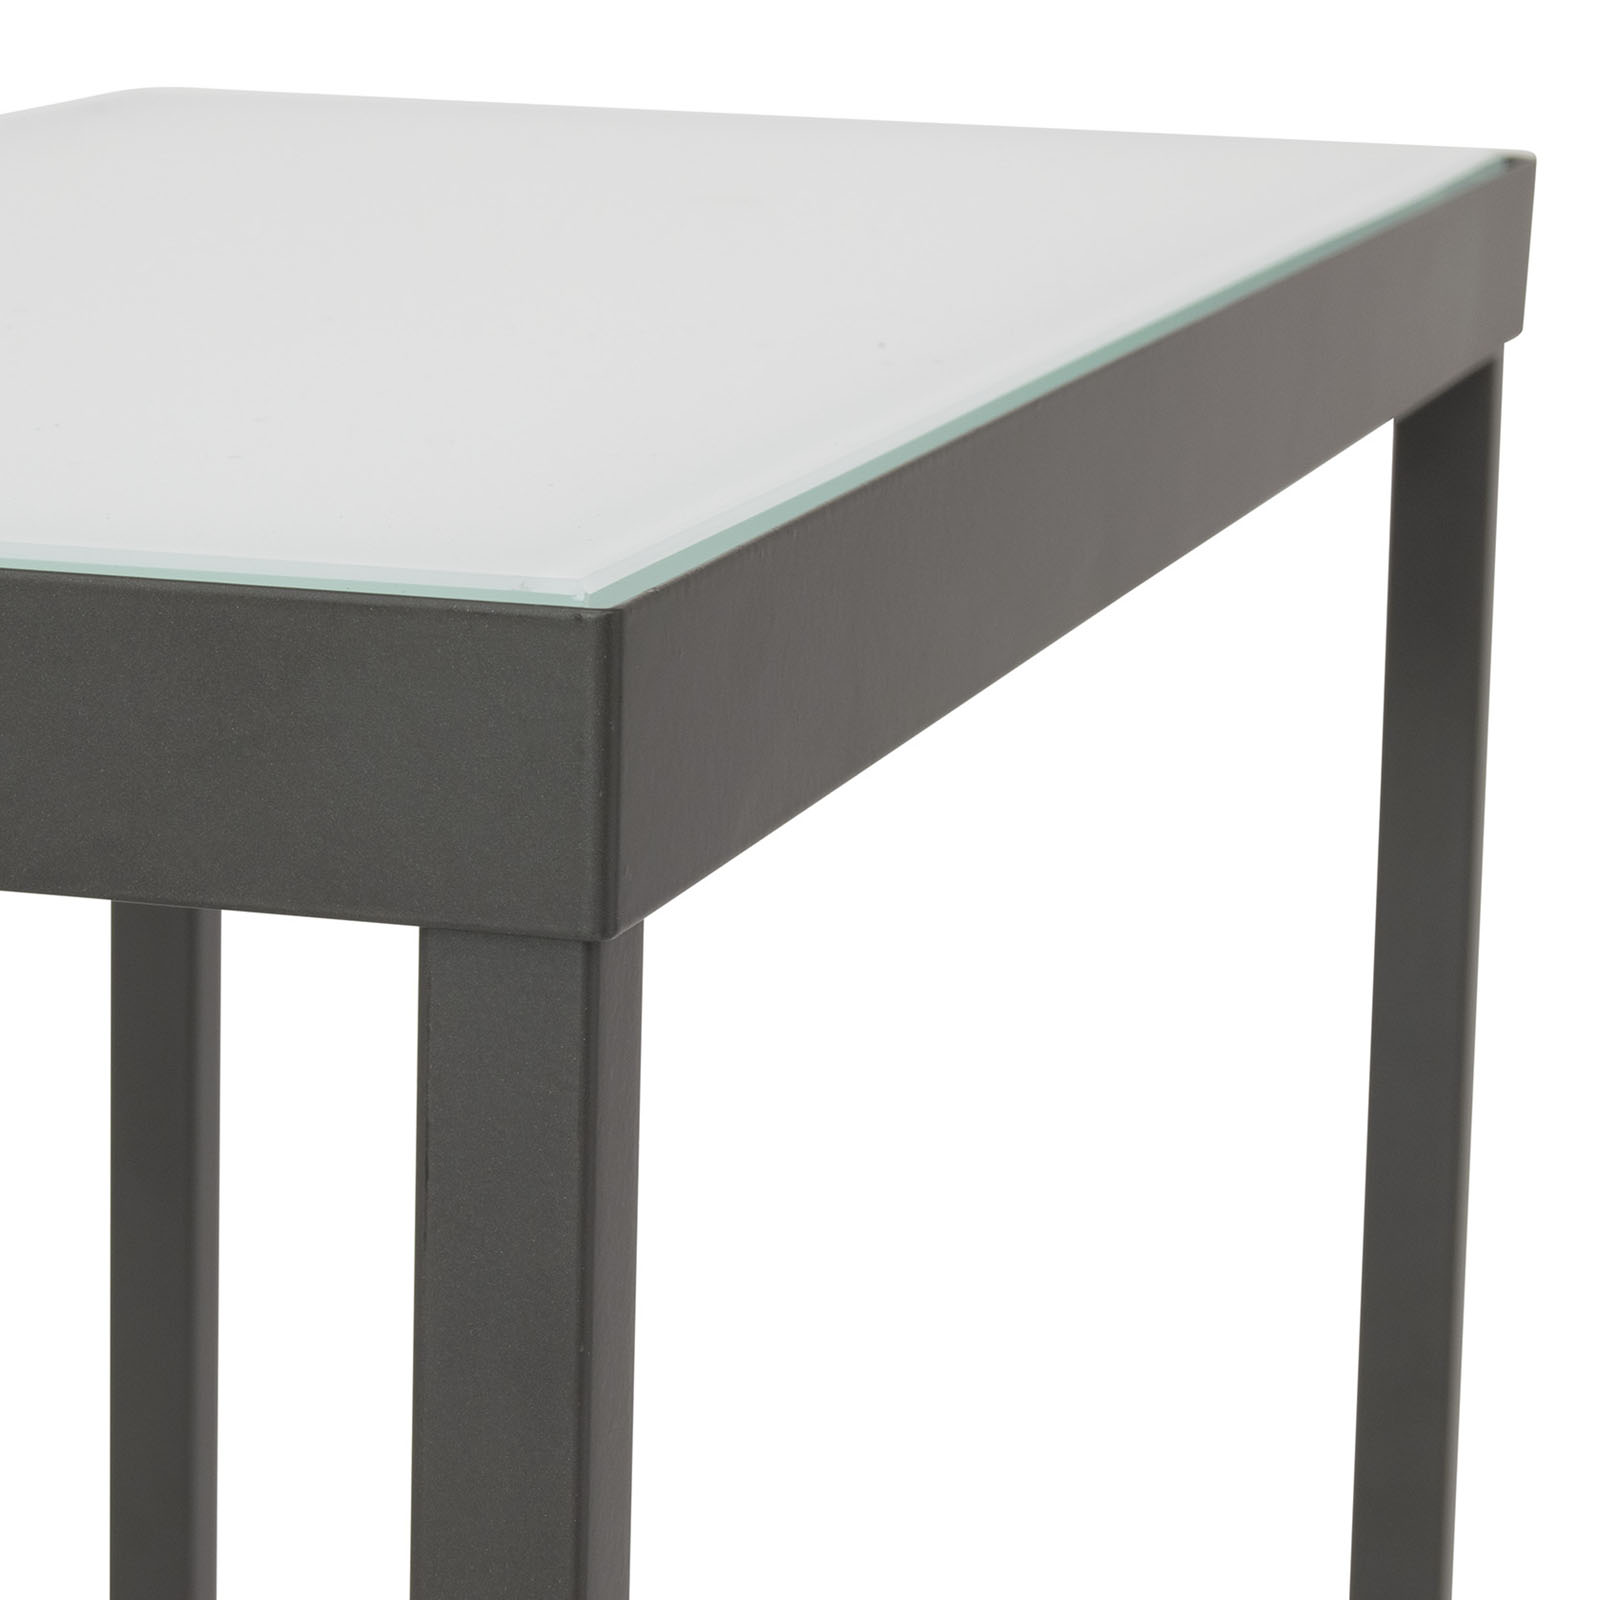 71053 Camber Side Table detail2